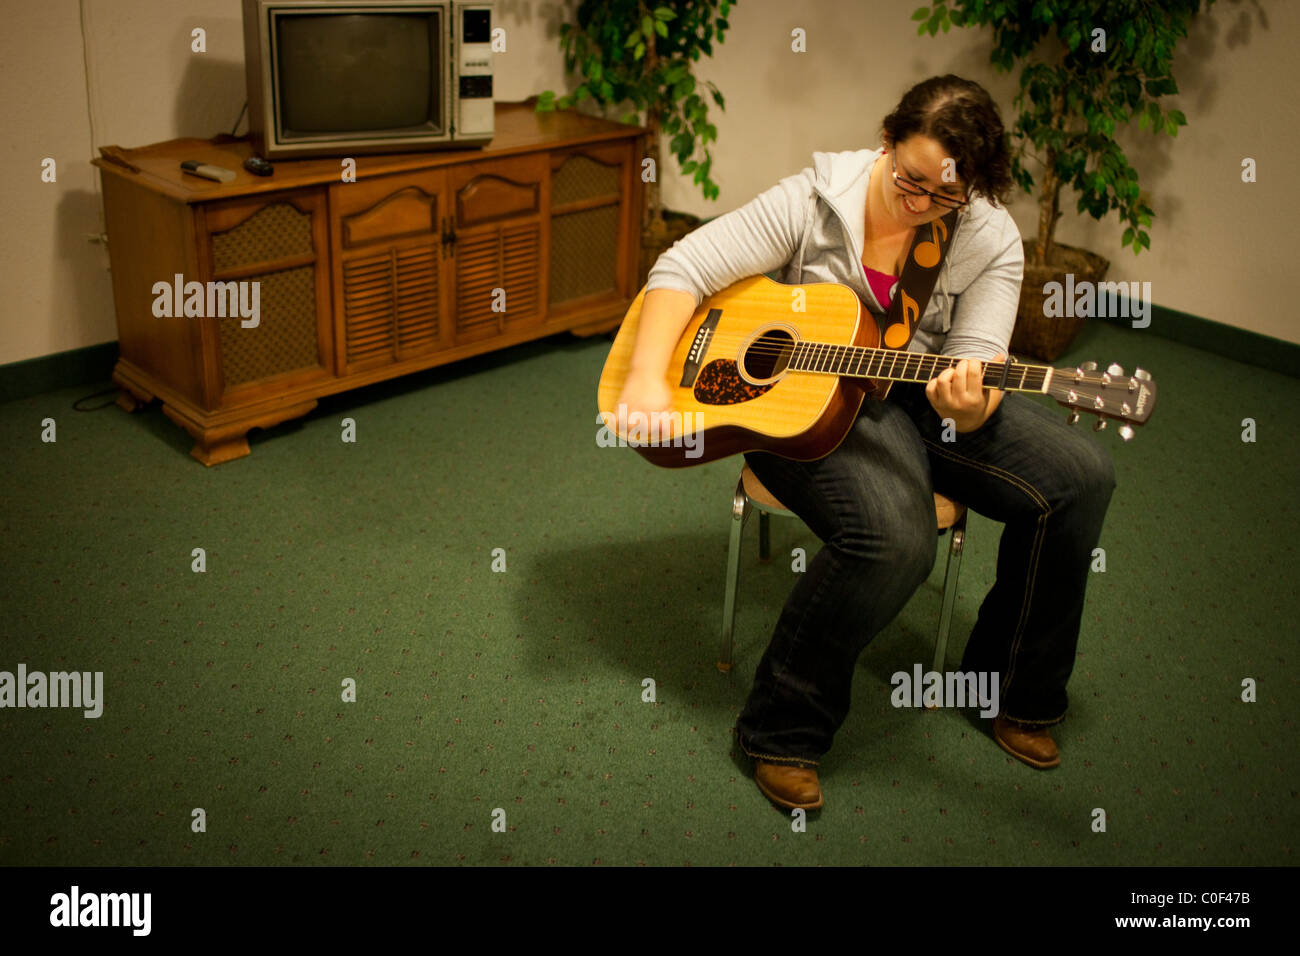 Fresno, California, United States. An obese teen plays her guitar ...